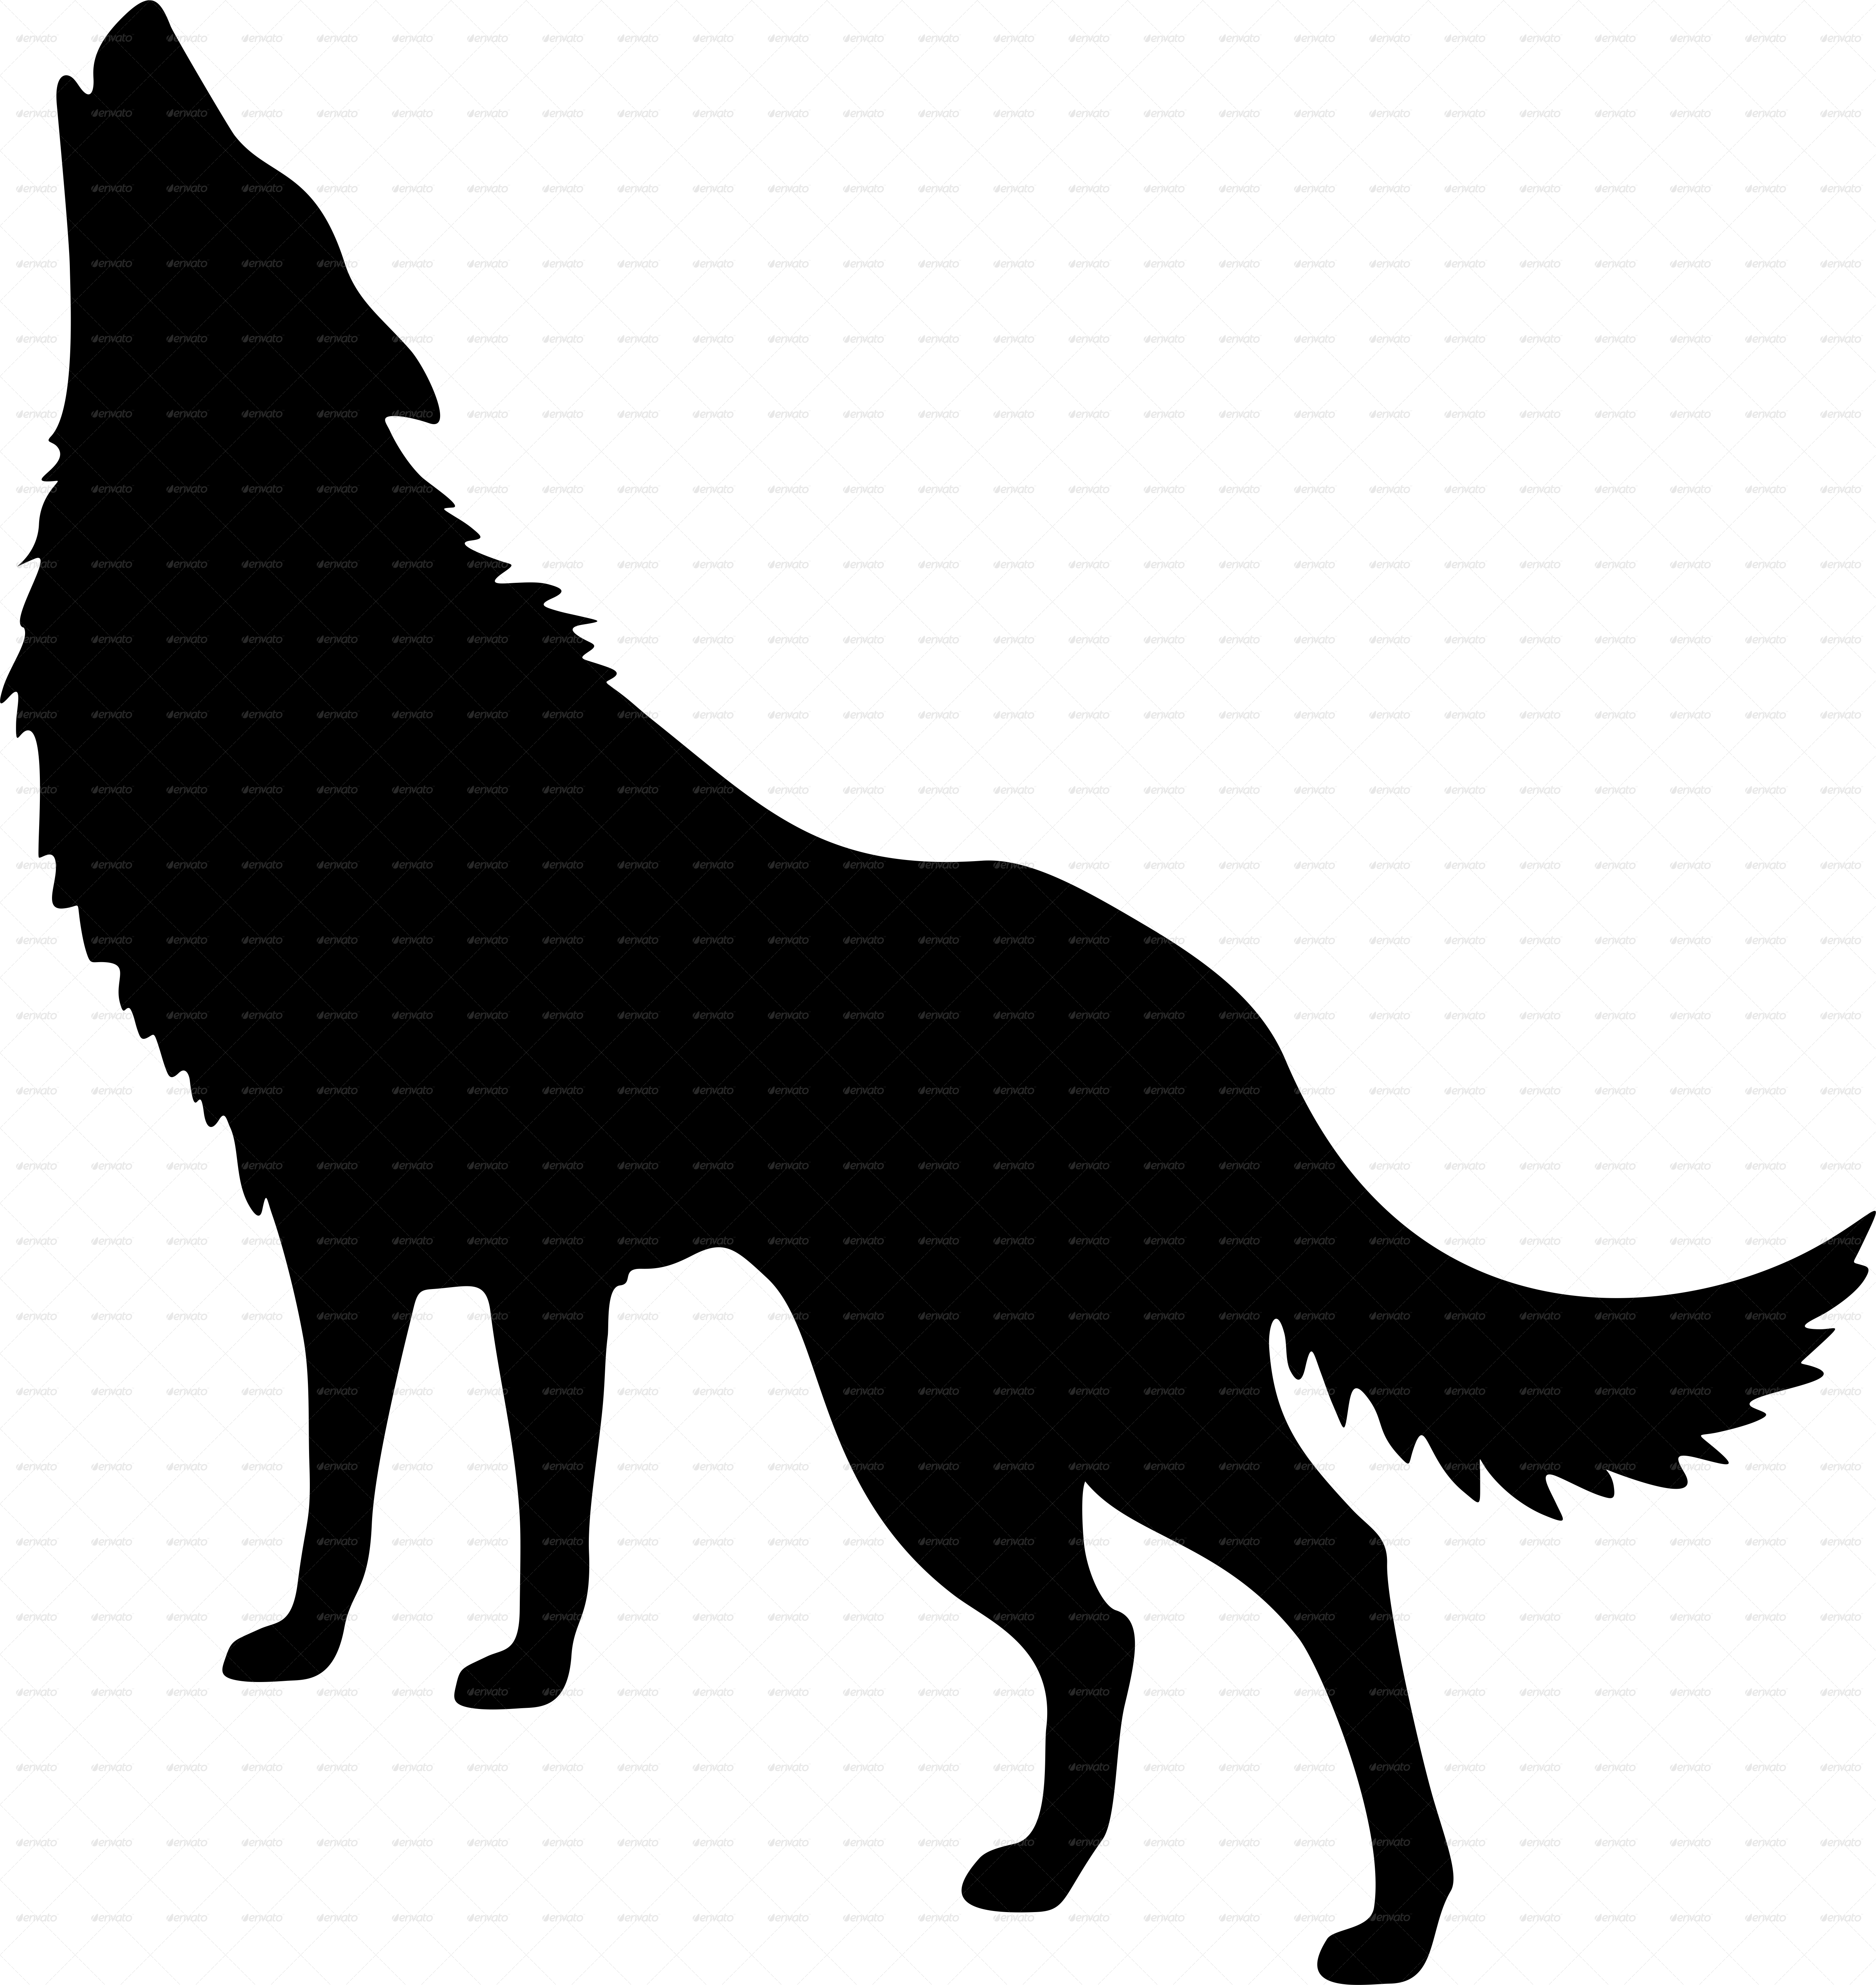 Wolf Howling At Blue Moon Ad Howling Sponsored Wolf Moon Blue Wolf Howling At Moon Wolf Silhouette Wolf Howling Drawing